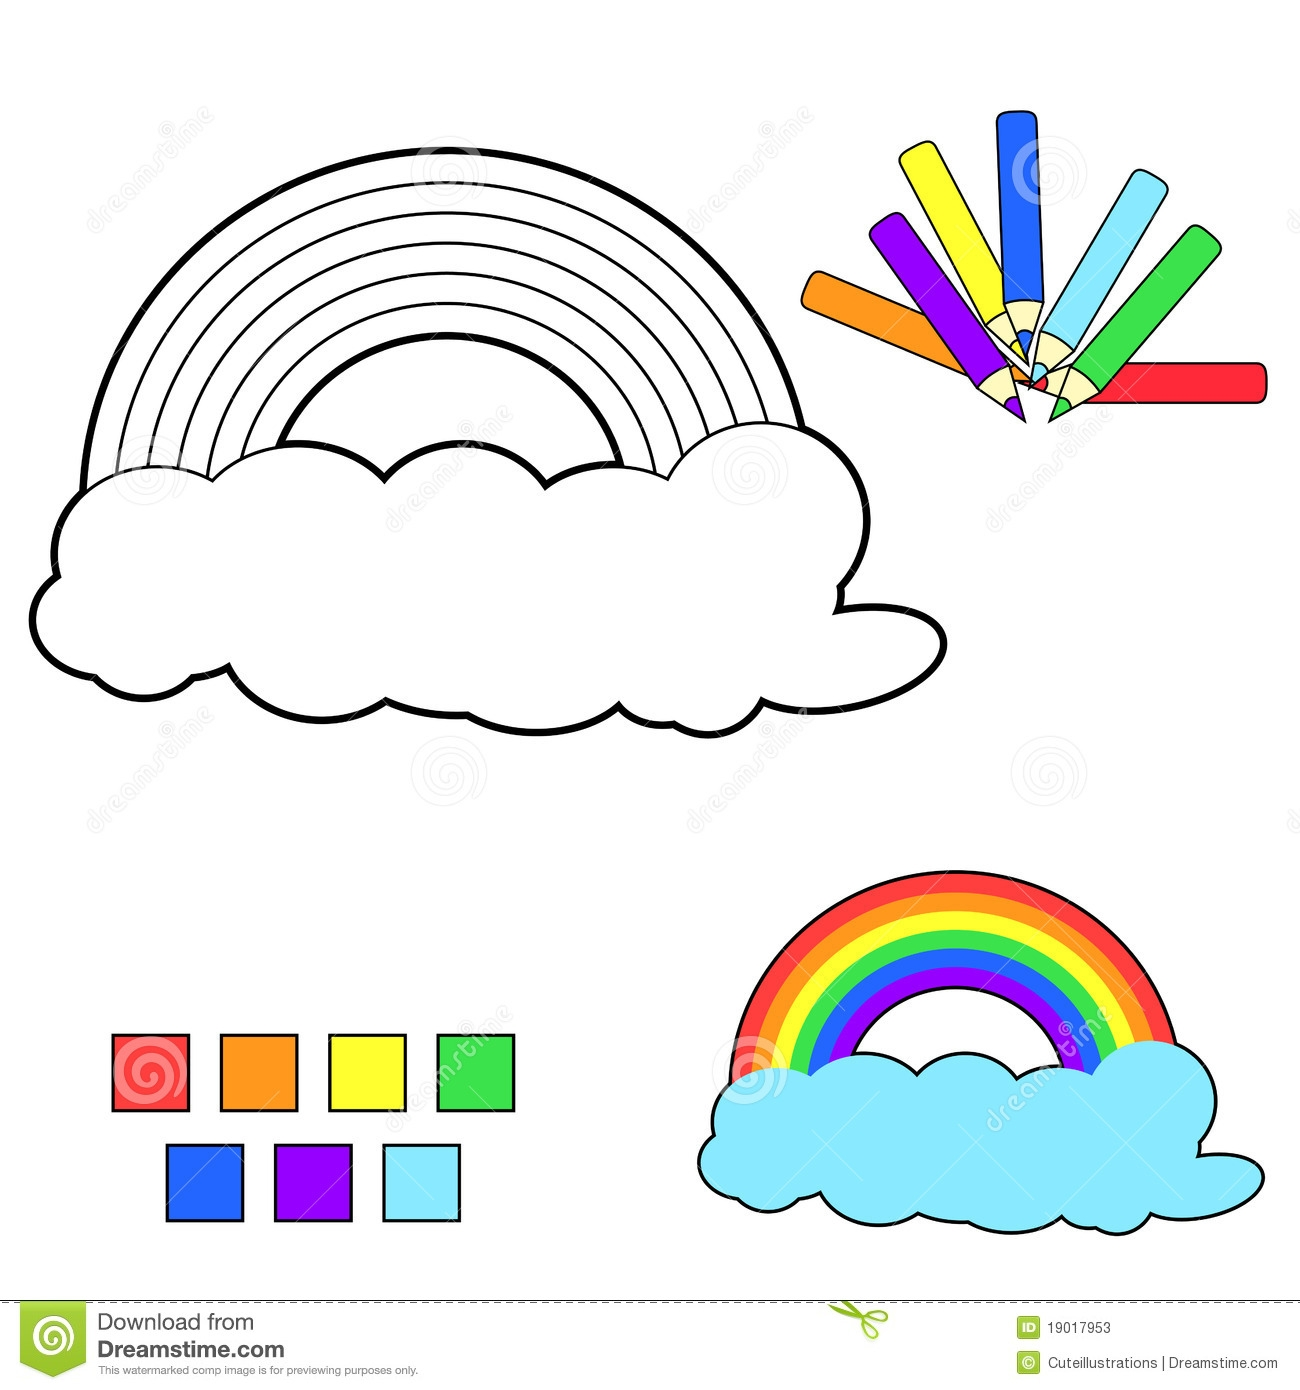 snowman coloring pages - stock photos coloring book sketch rainbow image